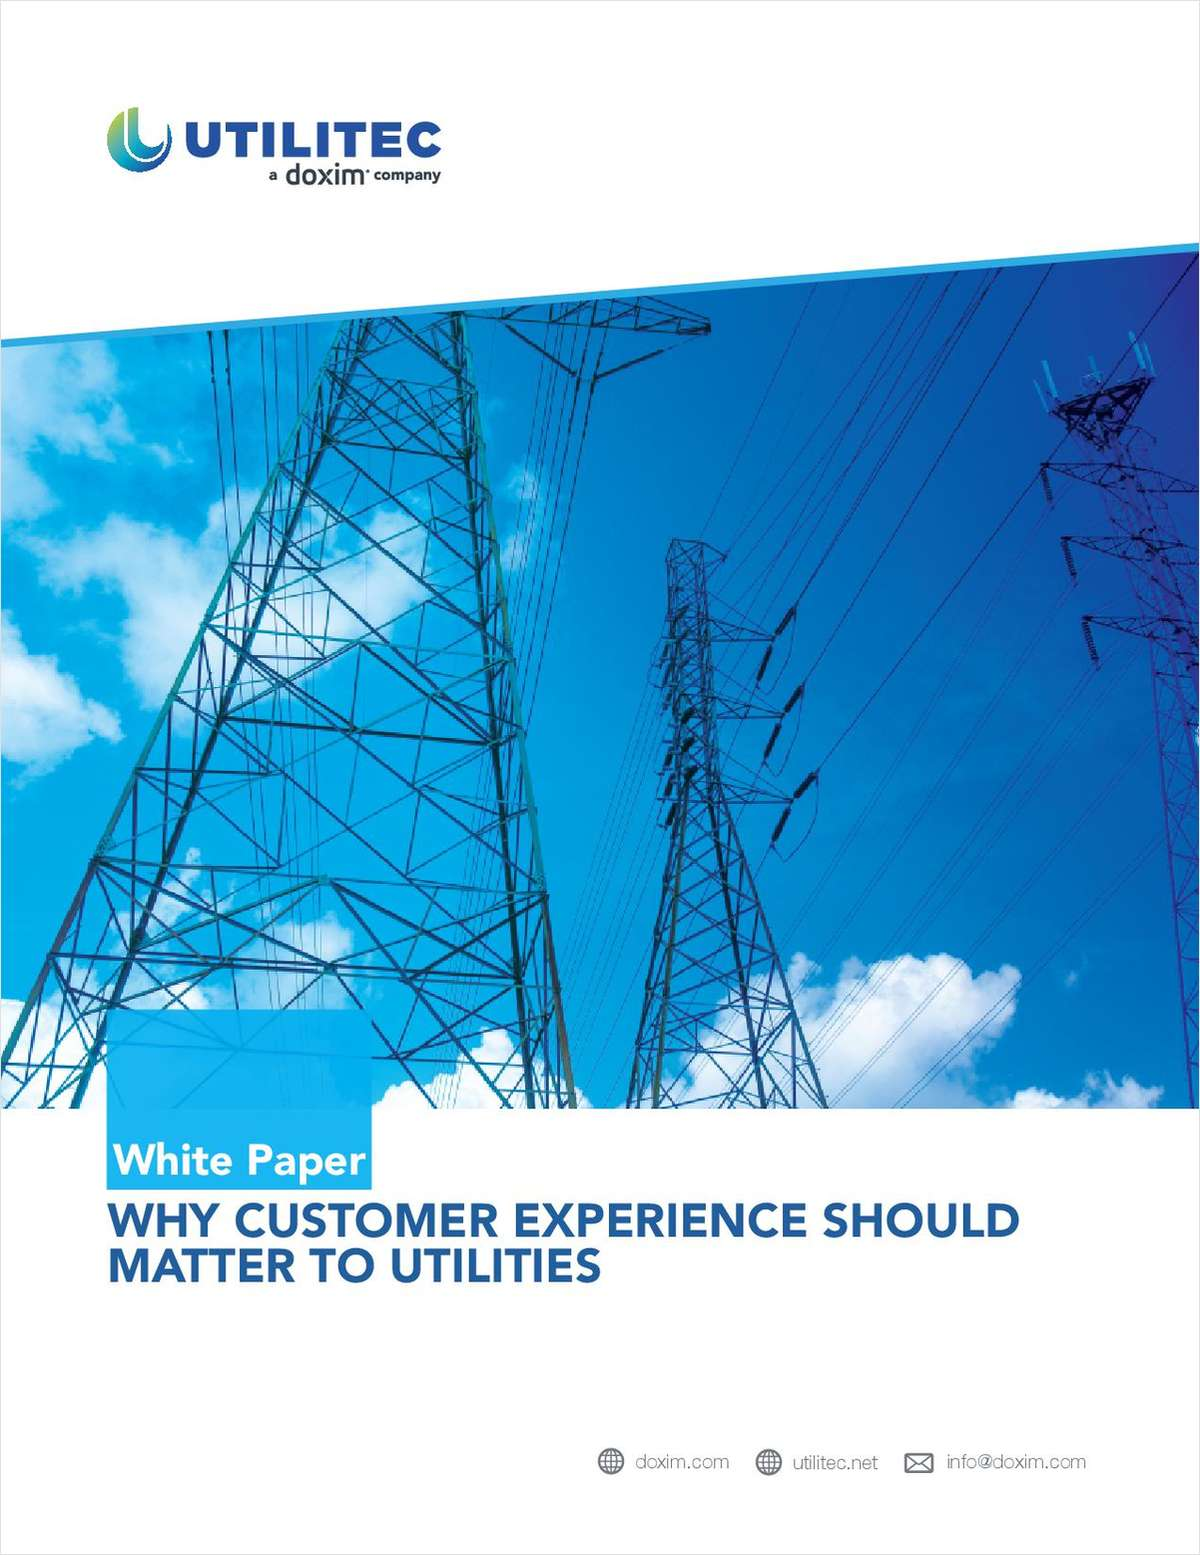 Why Customer Experience Should Matter to Utilities